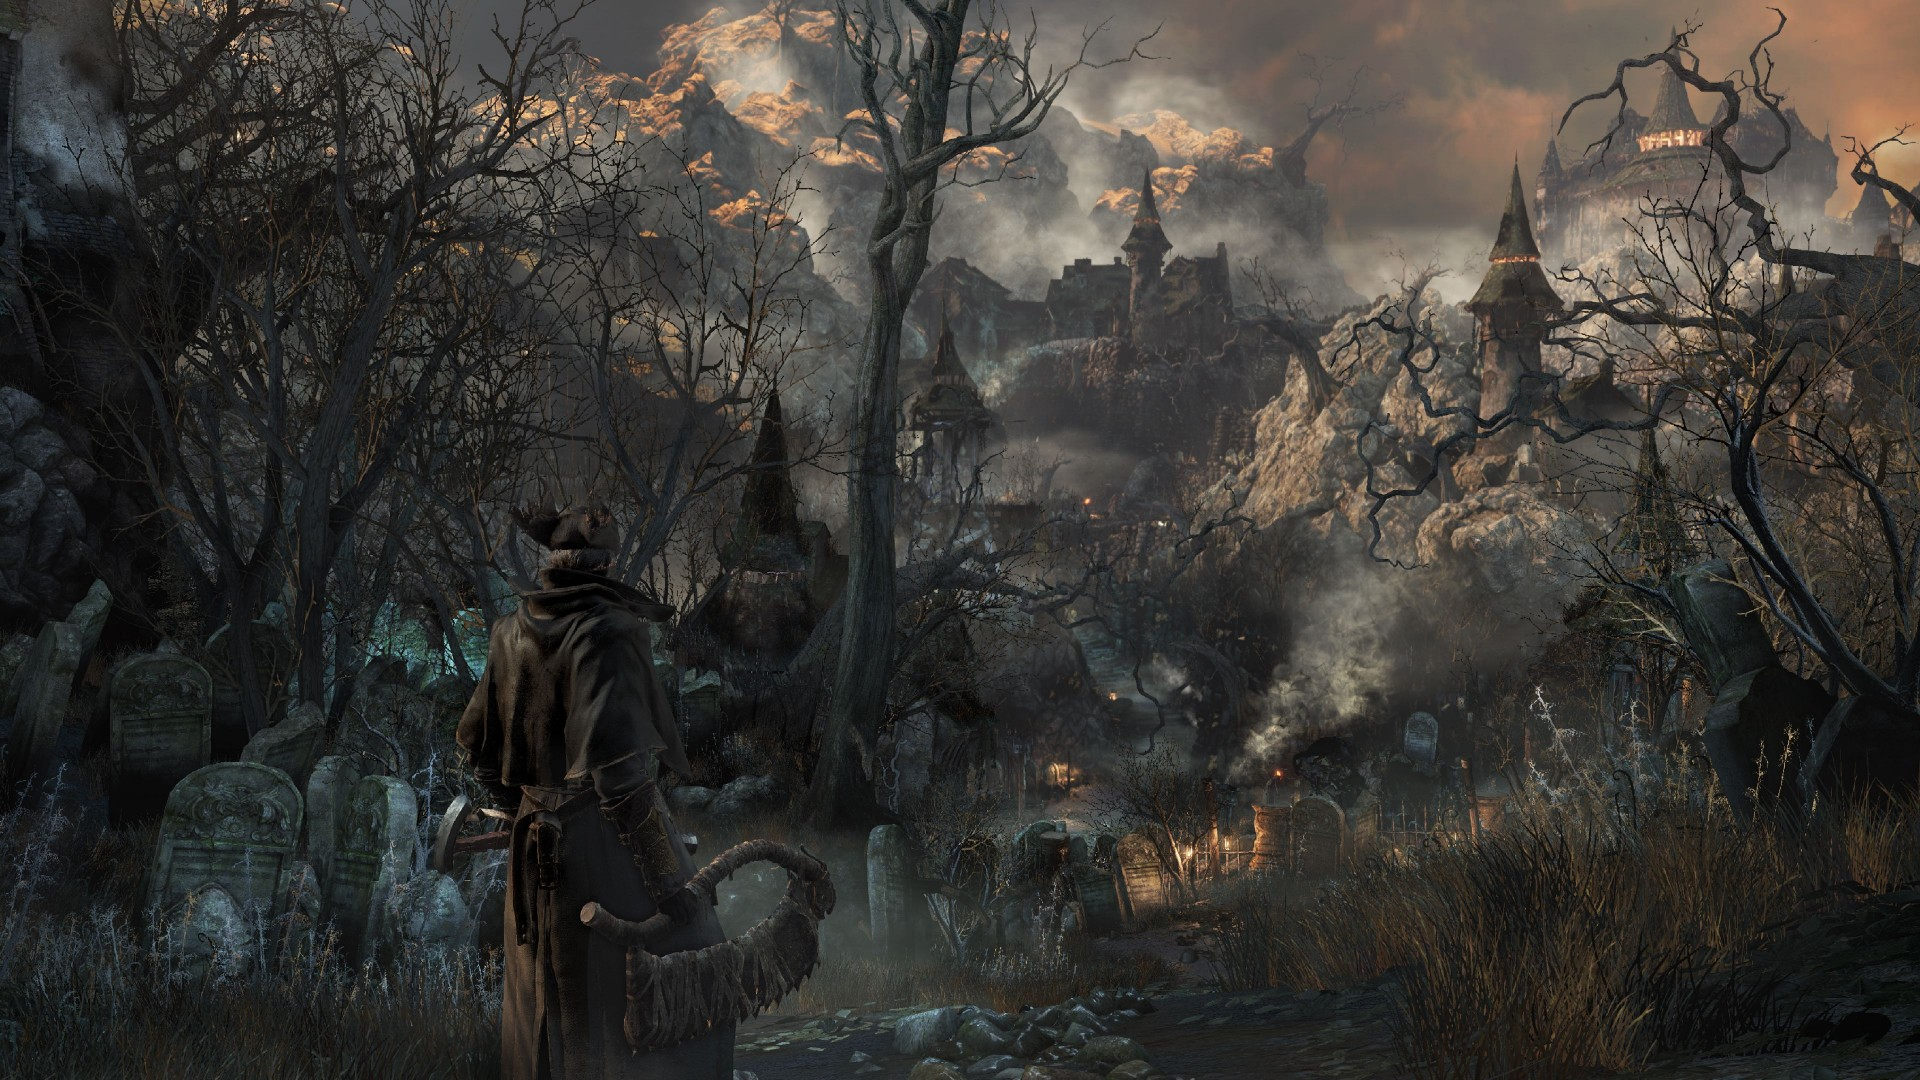 Bloodborne, gameplay, review, screenshot, interface, game, Yharnam, Best Games of 2015, city, darkness, fog (horizontal)